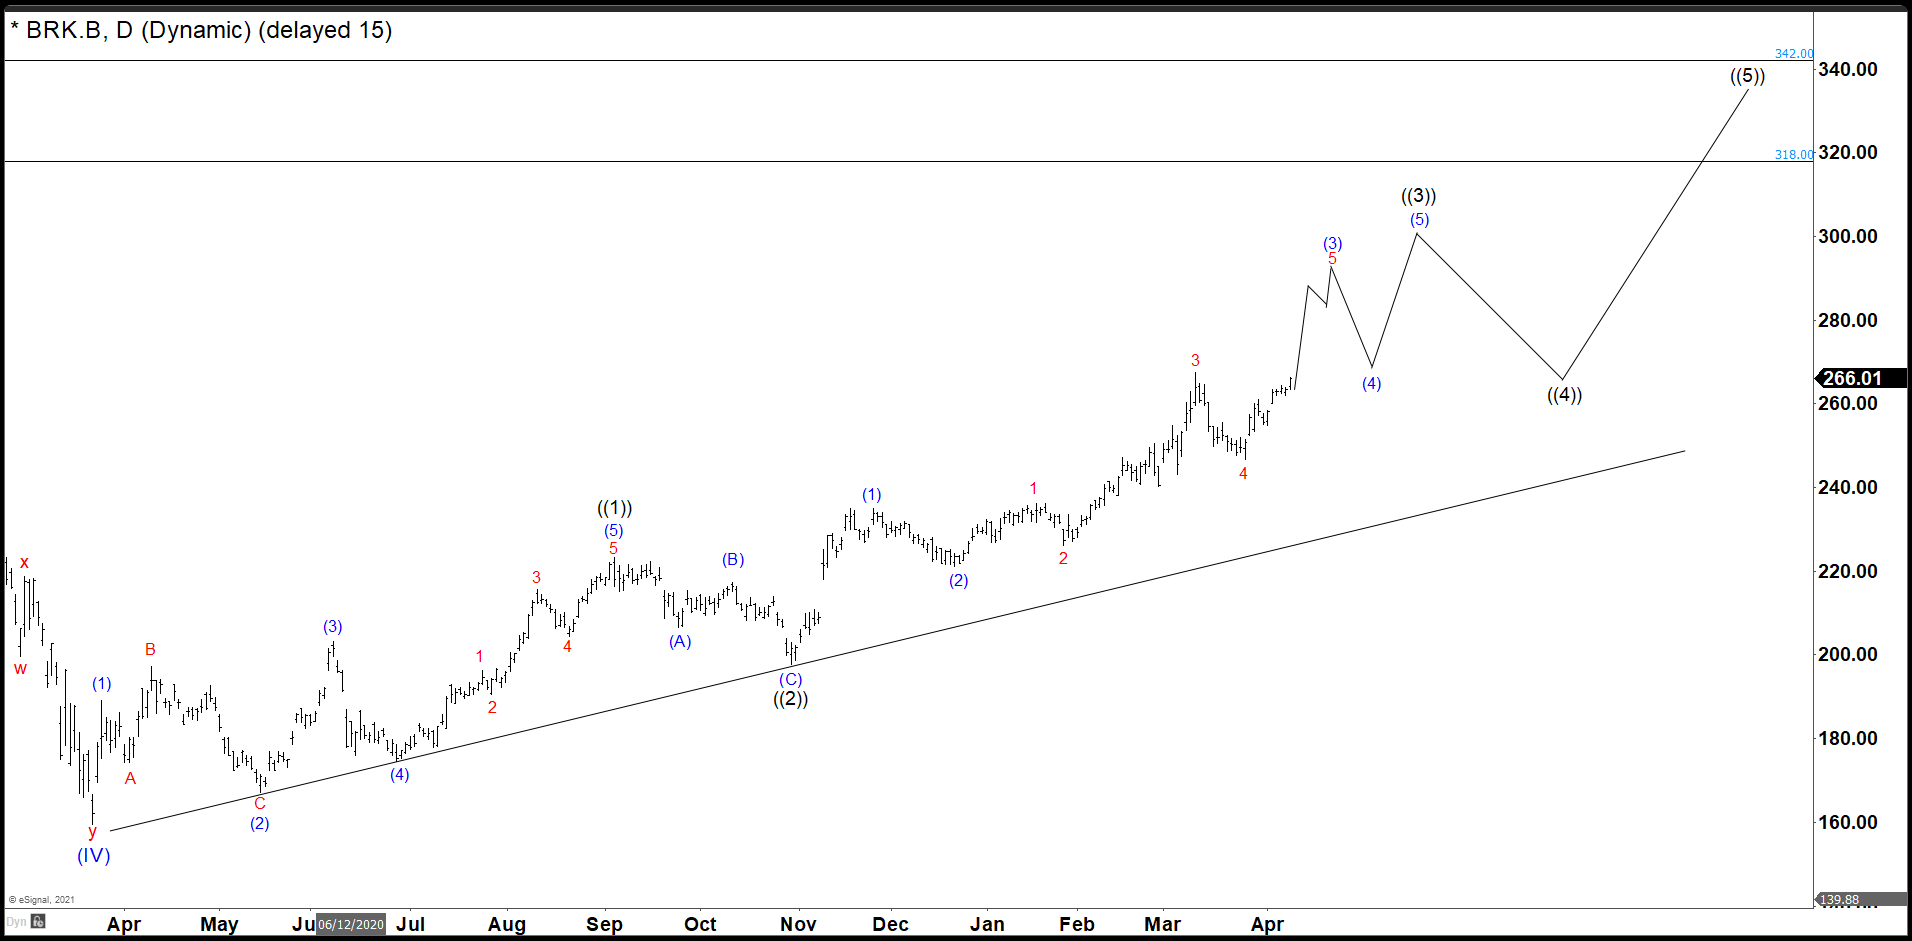 Berkshire Hathaway Completed Wave ((4)) Target Comes in 310